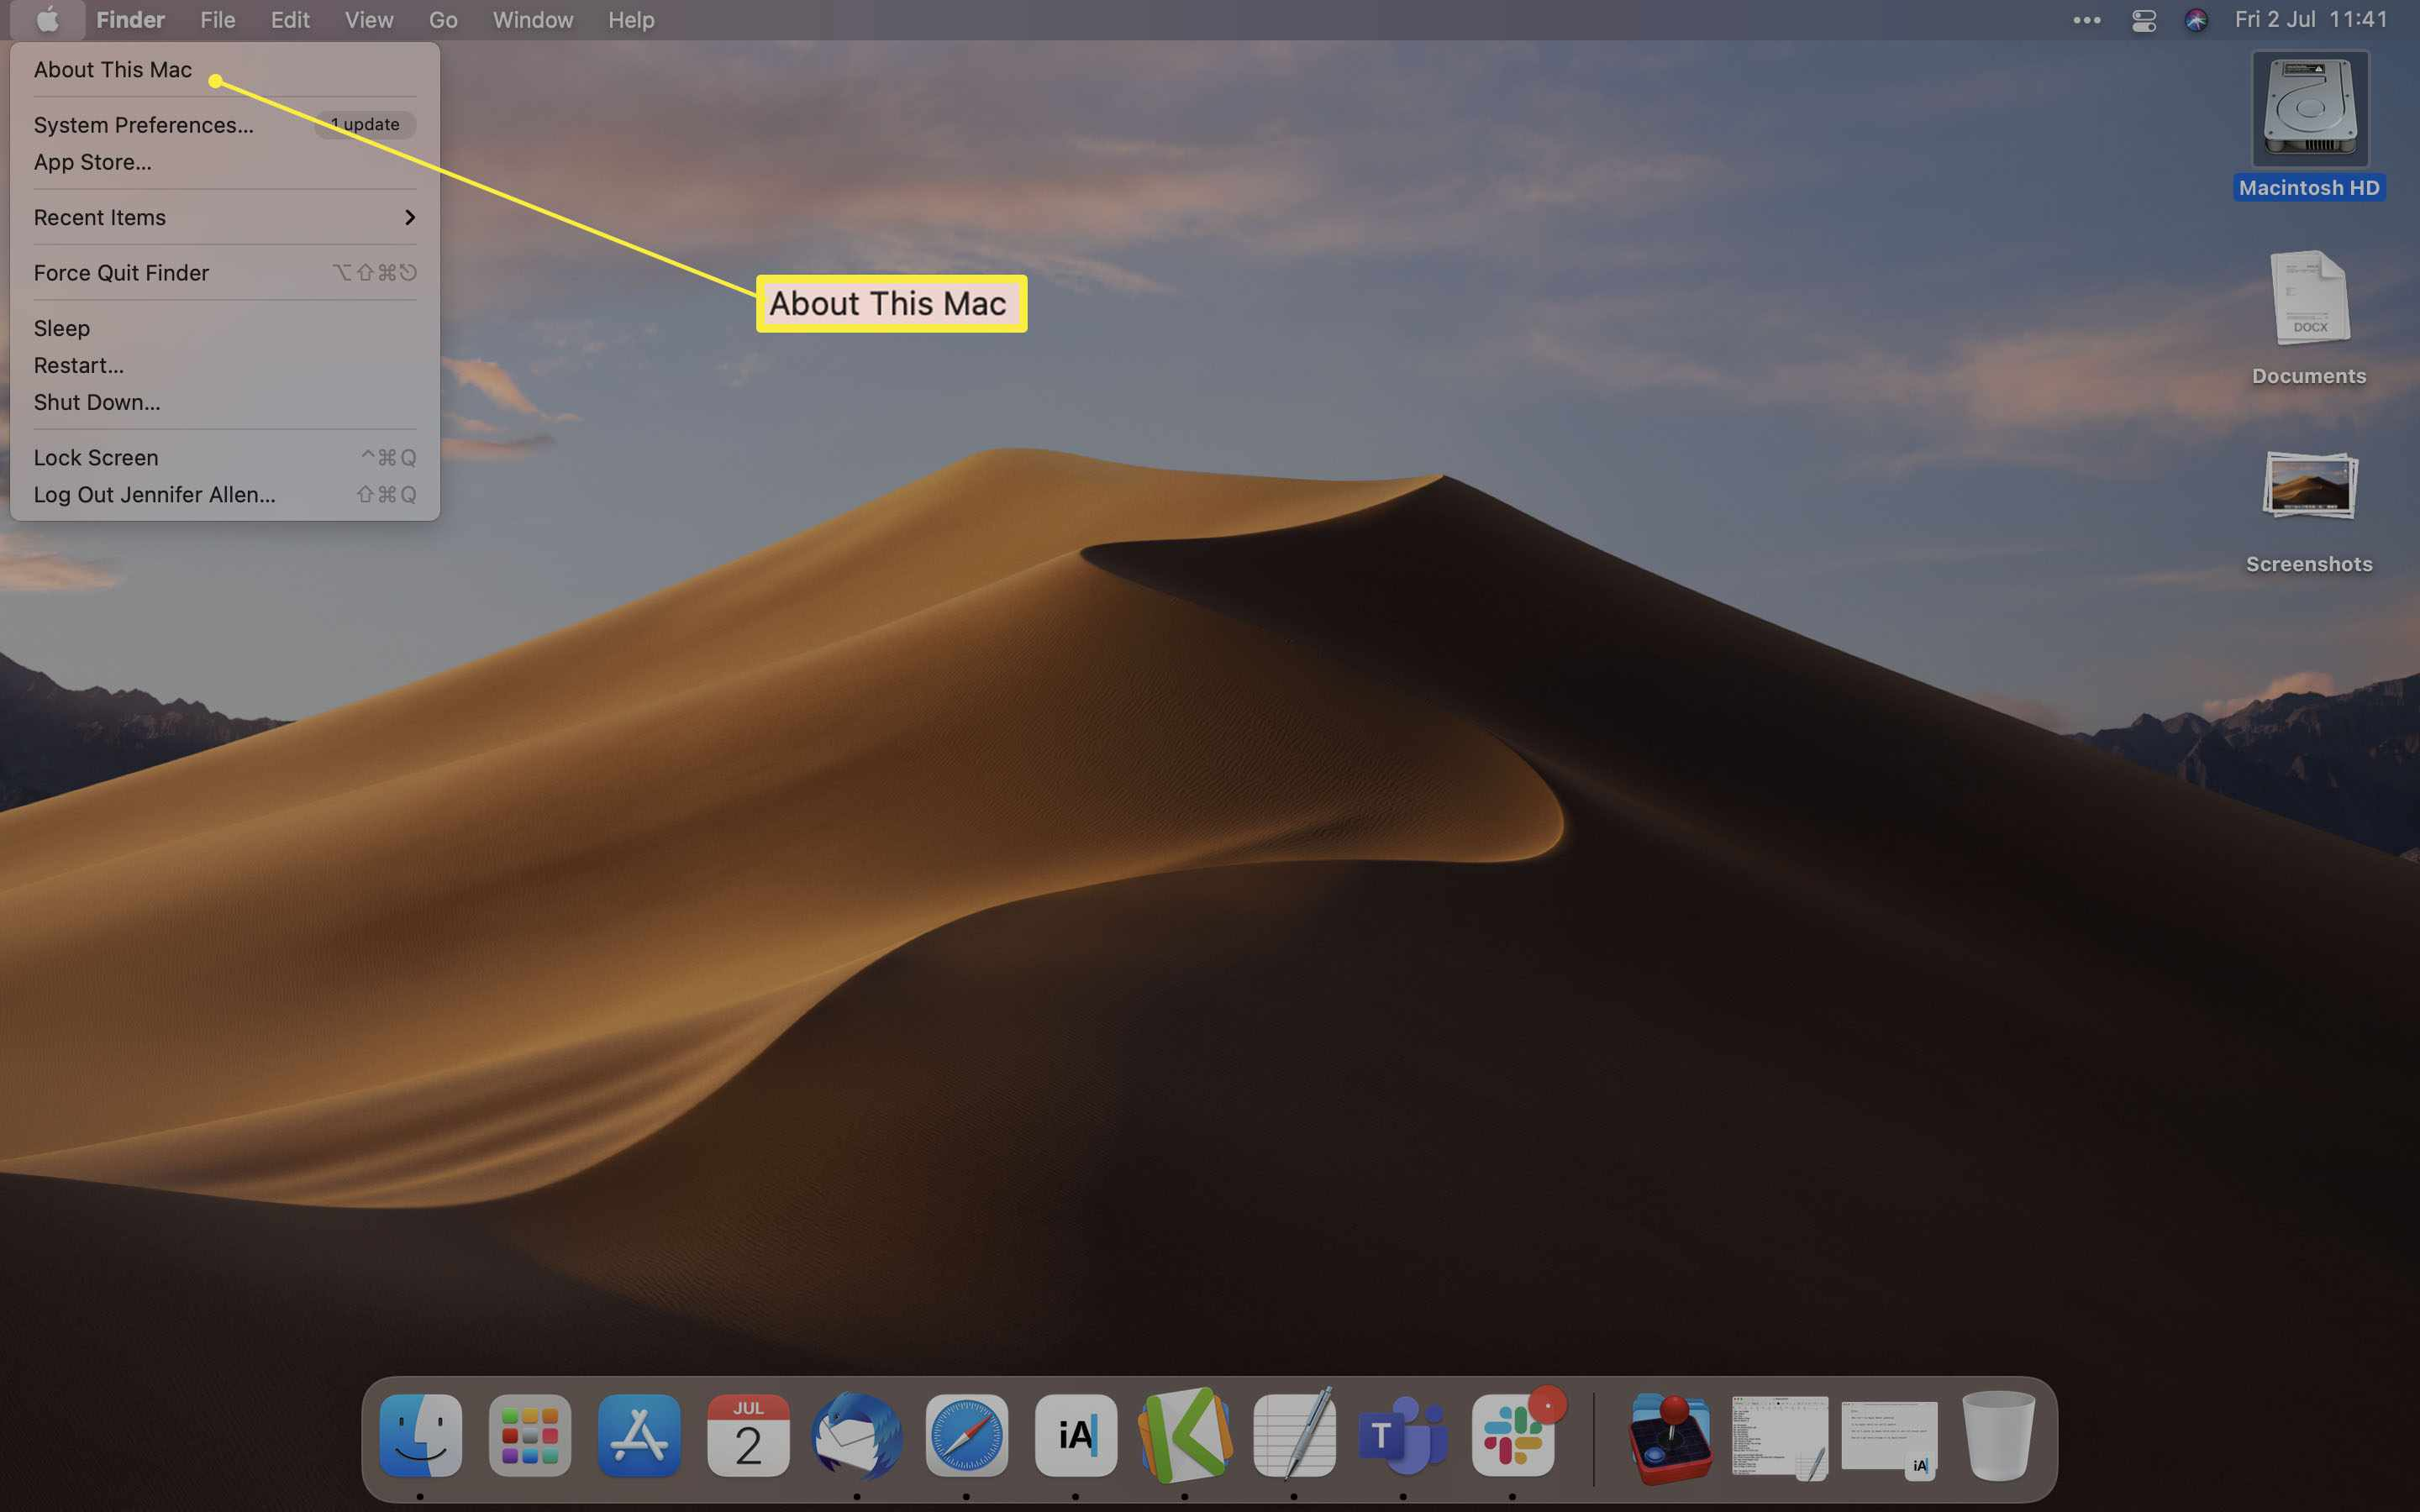 macOS desktop with About This Mac highlighted